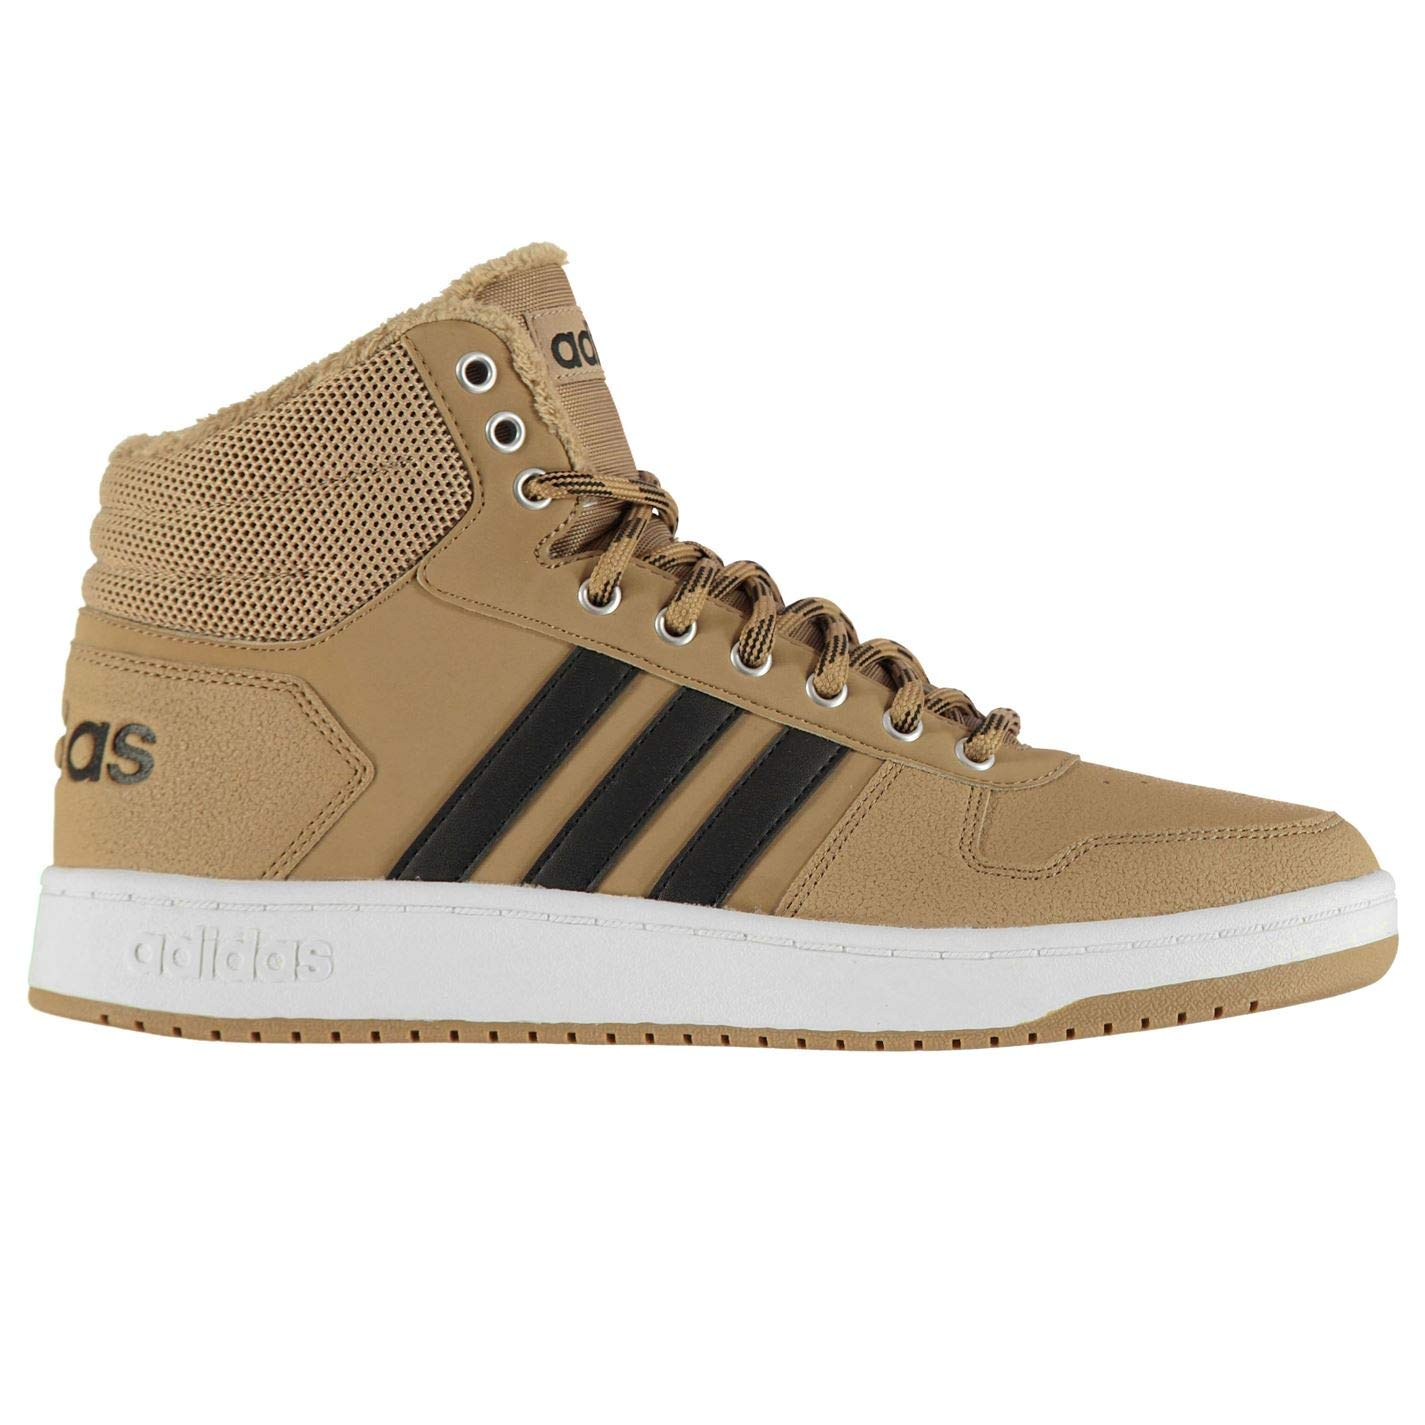 Adidas Hoops 2.0 Mid, Chaussures de Basketball Homme DB0079